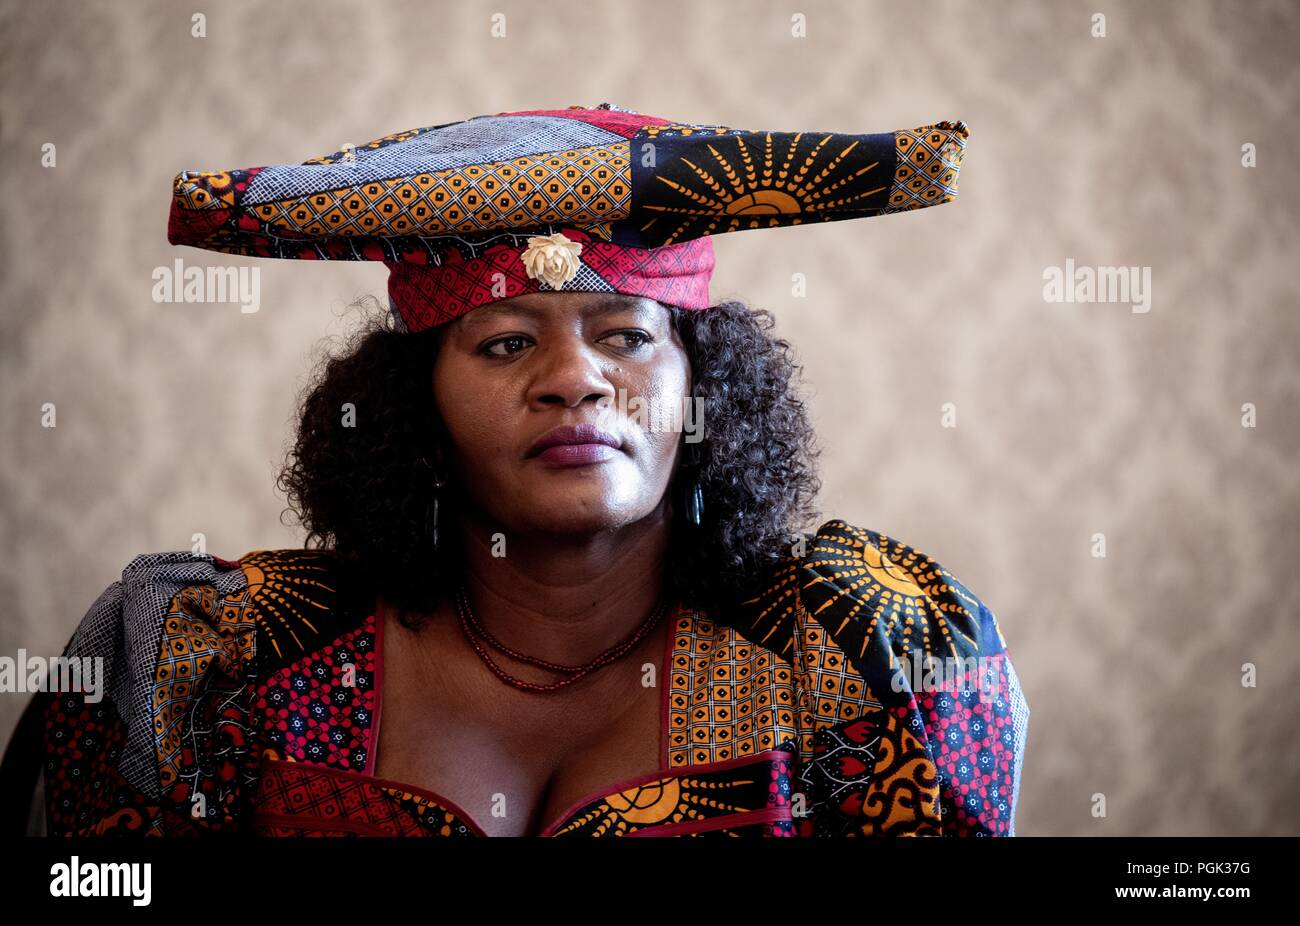 Germany, Berlin. 27th Aug, 2018. Erika Dasilla Kandurozu participates in a press conference as part of the delegation of Ovaherero and Nama from Namibia. This week, stolen remains of Herero and Nama murdered in the 1904-08 genocide are to be returned to a government delegation from Namibia. Credit: Kay Nietfeld/dpa/Alamy Live News - Stock Image